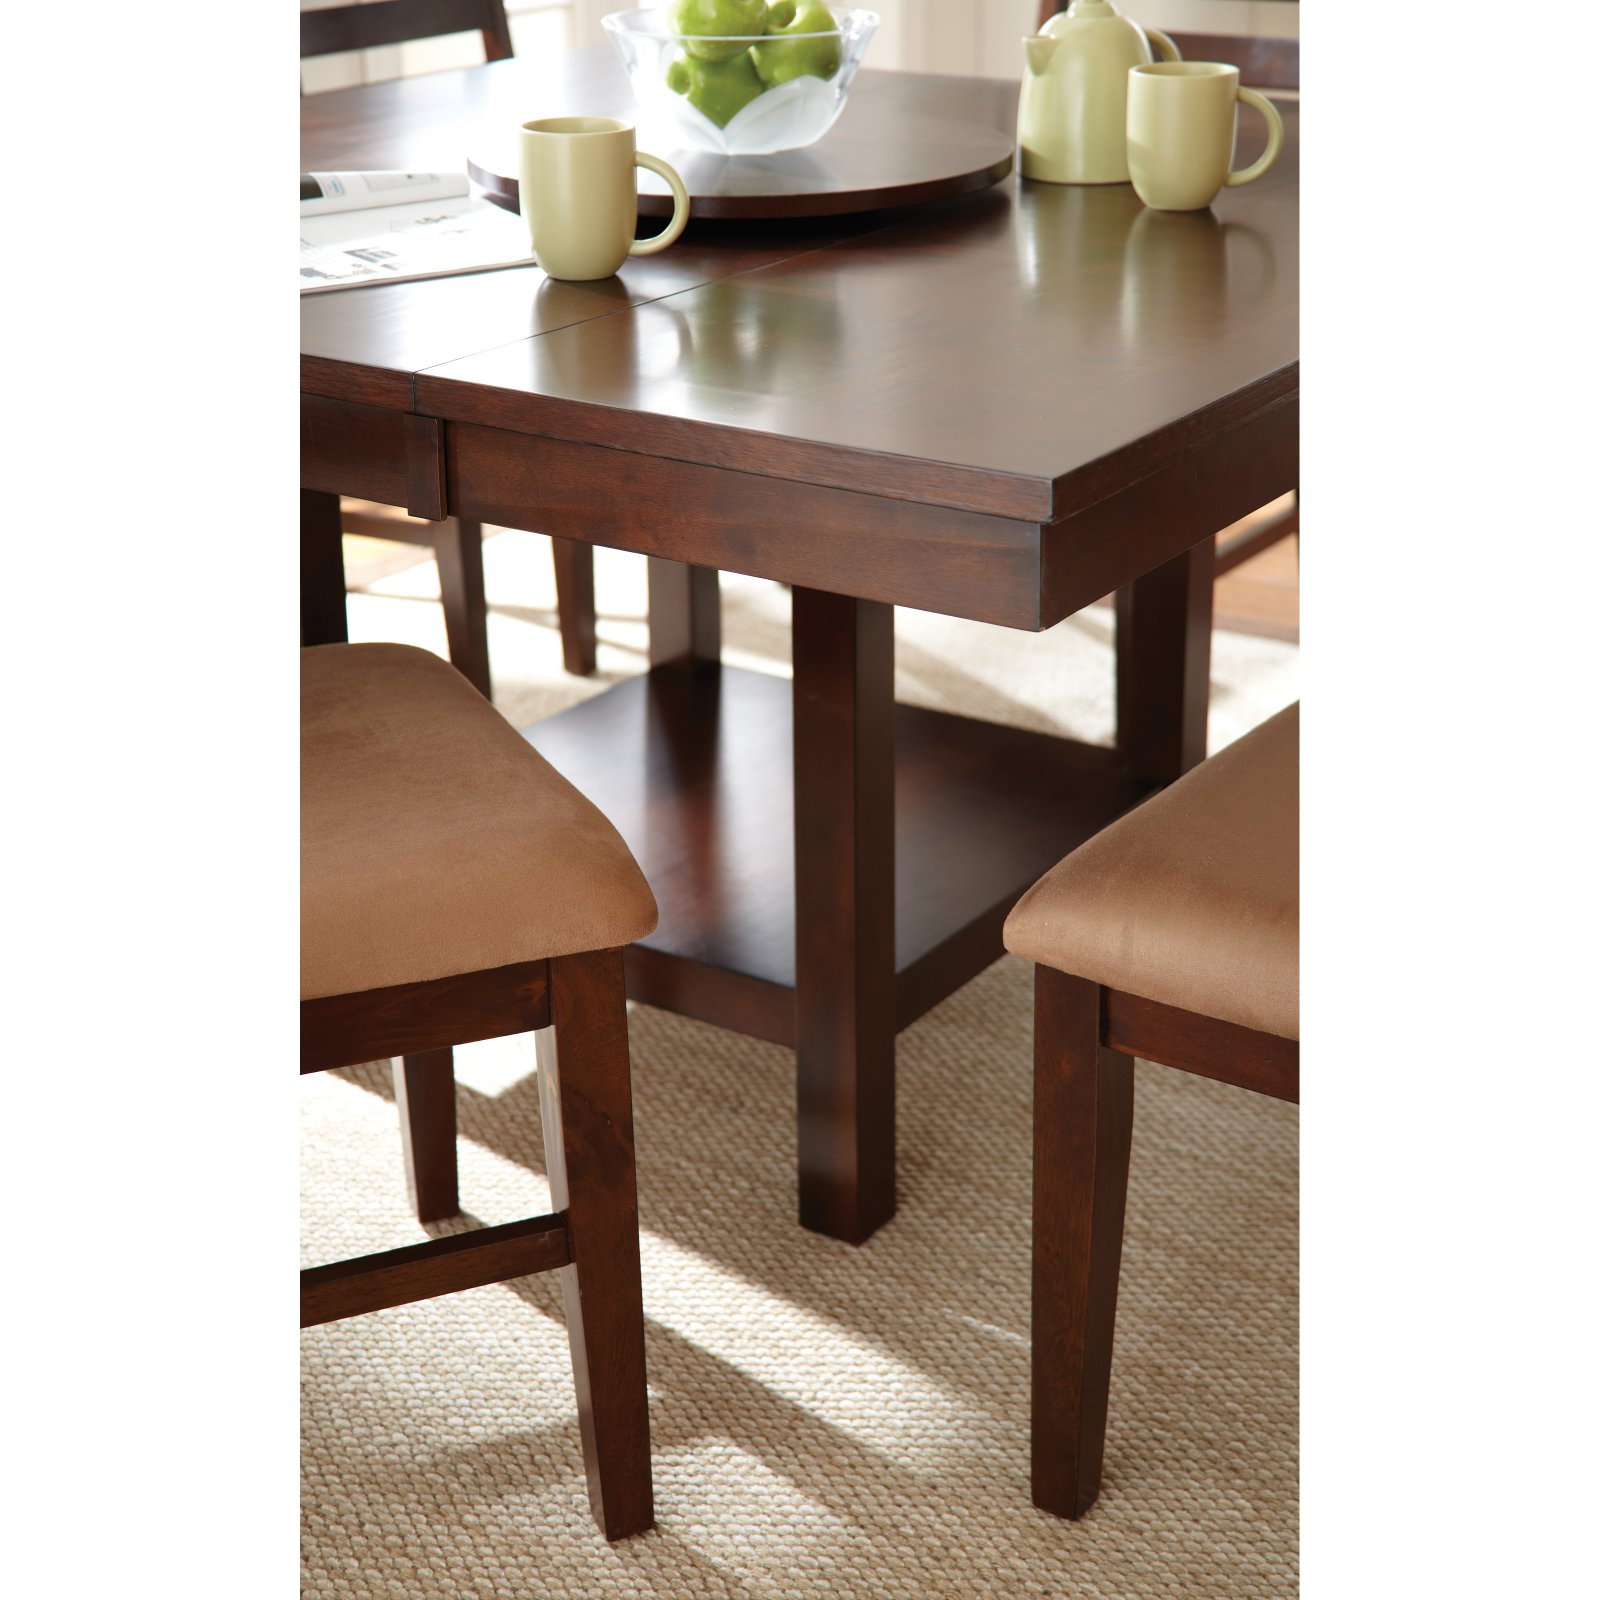 Steve Silver Eden Table with 18 in. Lazy Susan